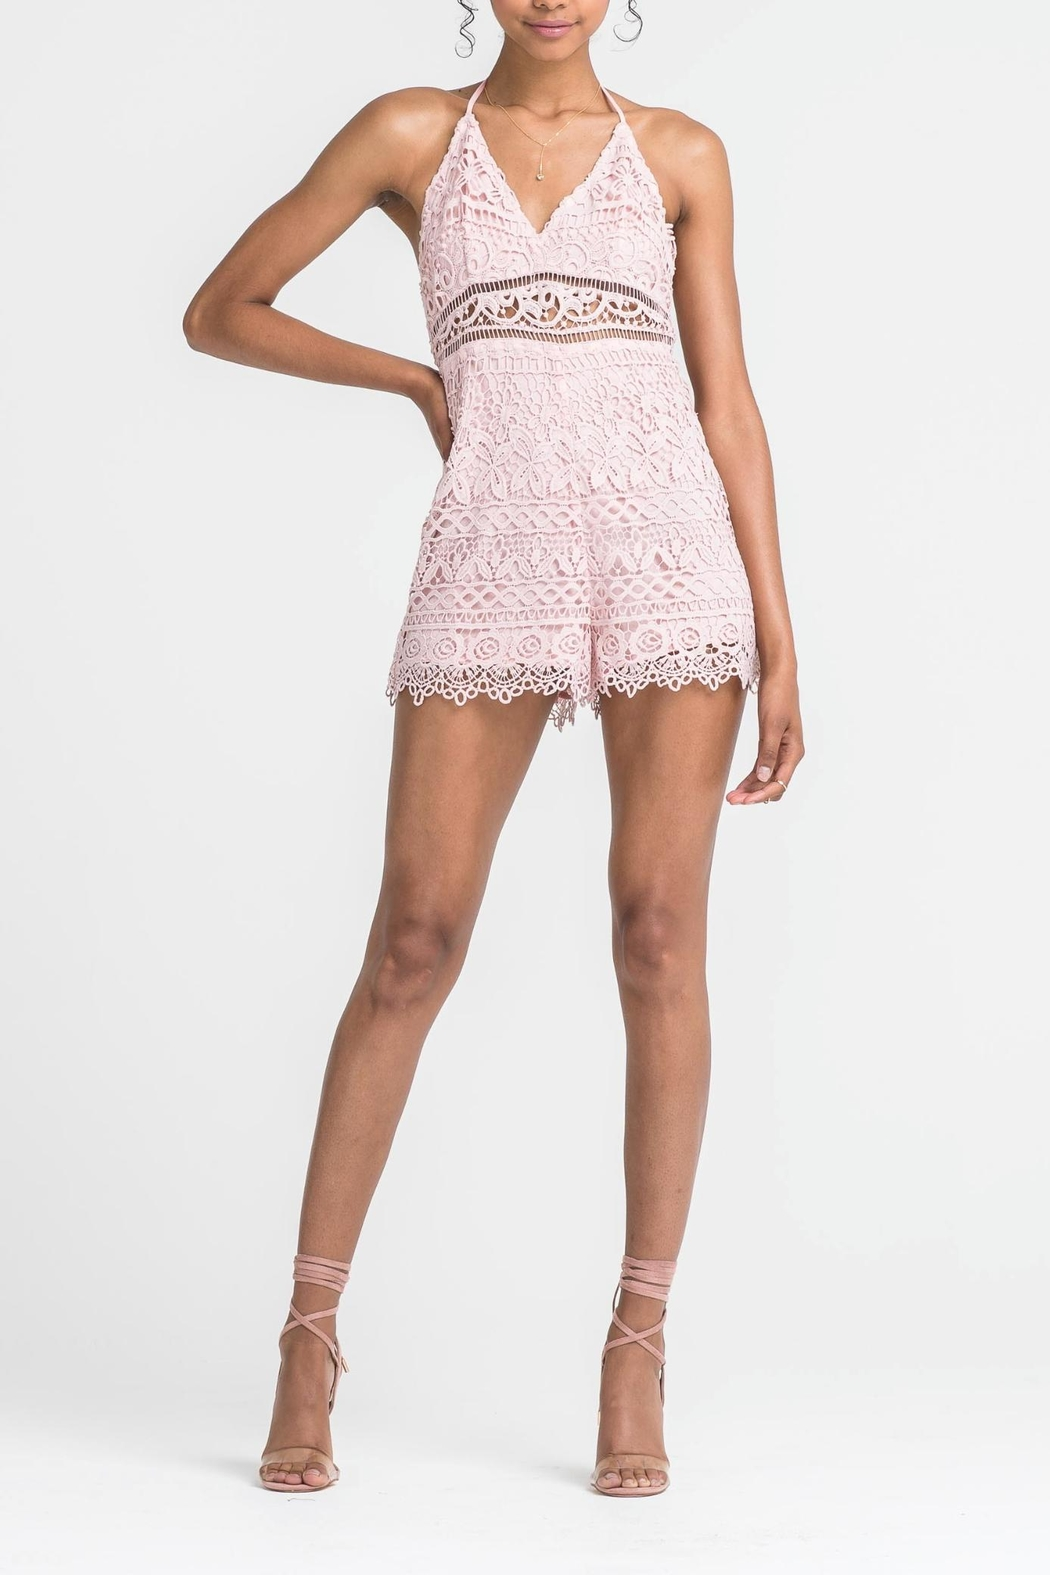 3d1e7aba3a21 Lush Lace Cut Out Romper from Florida by Apricot Lane St. Armands ...